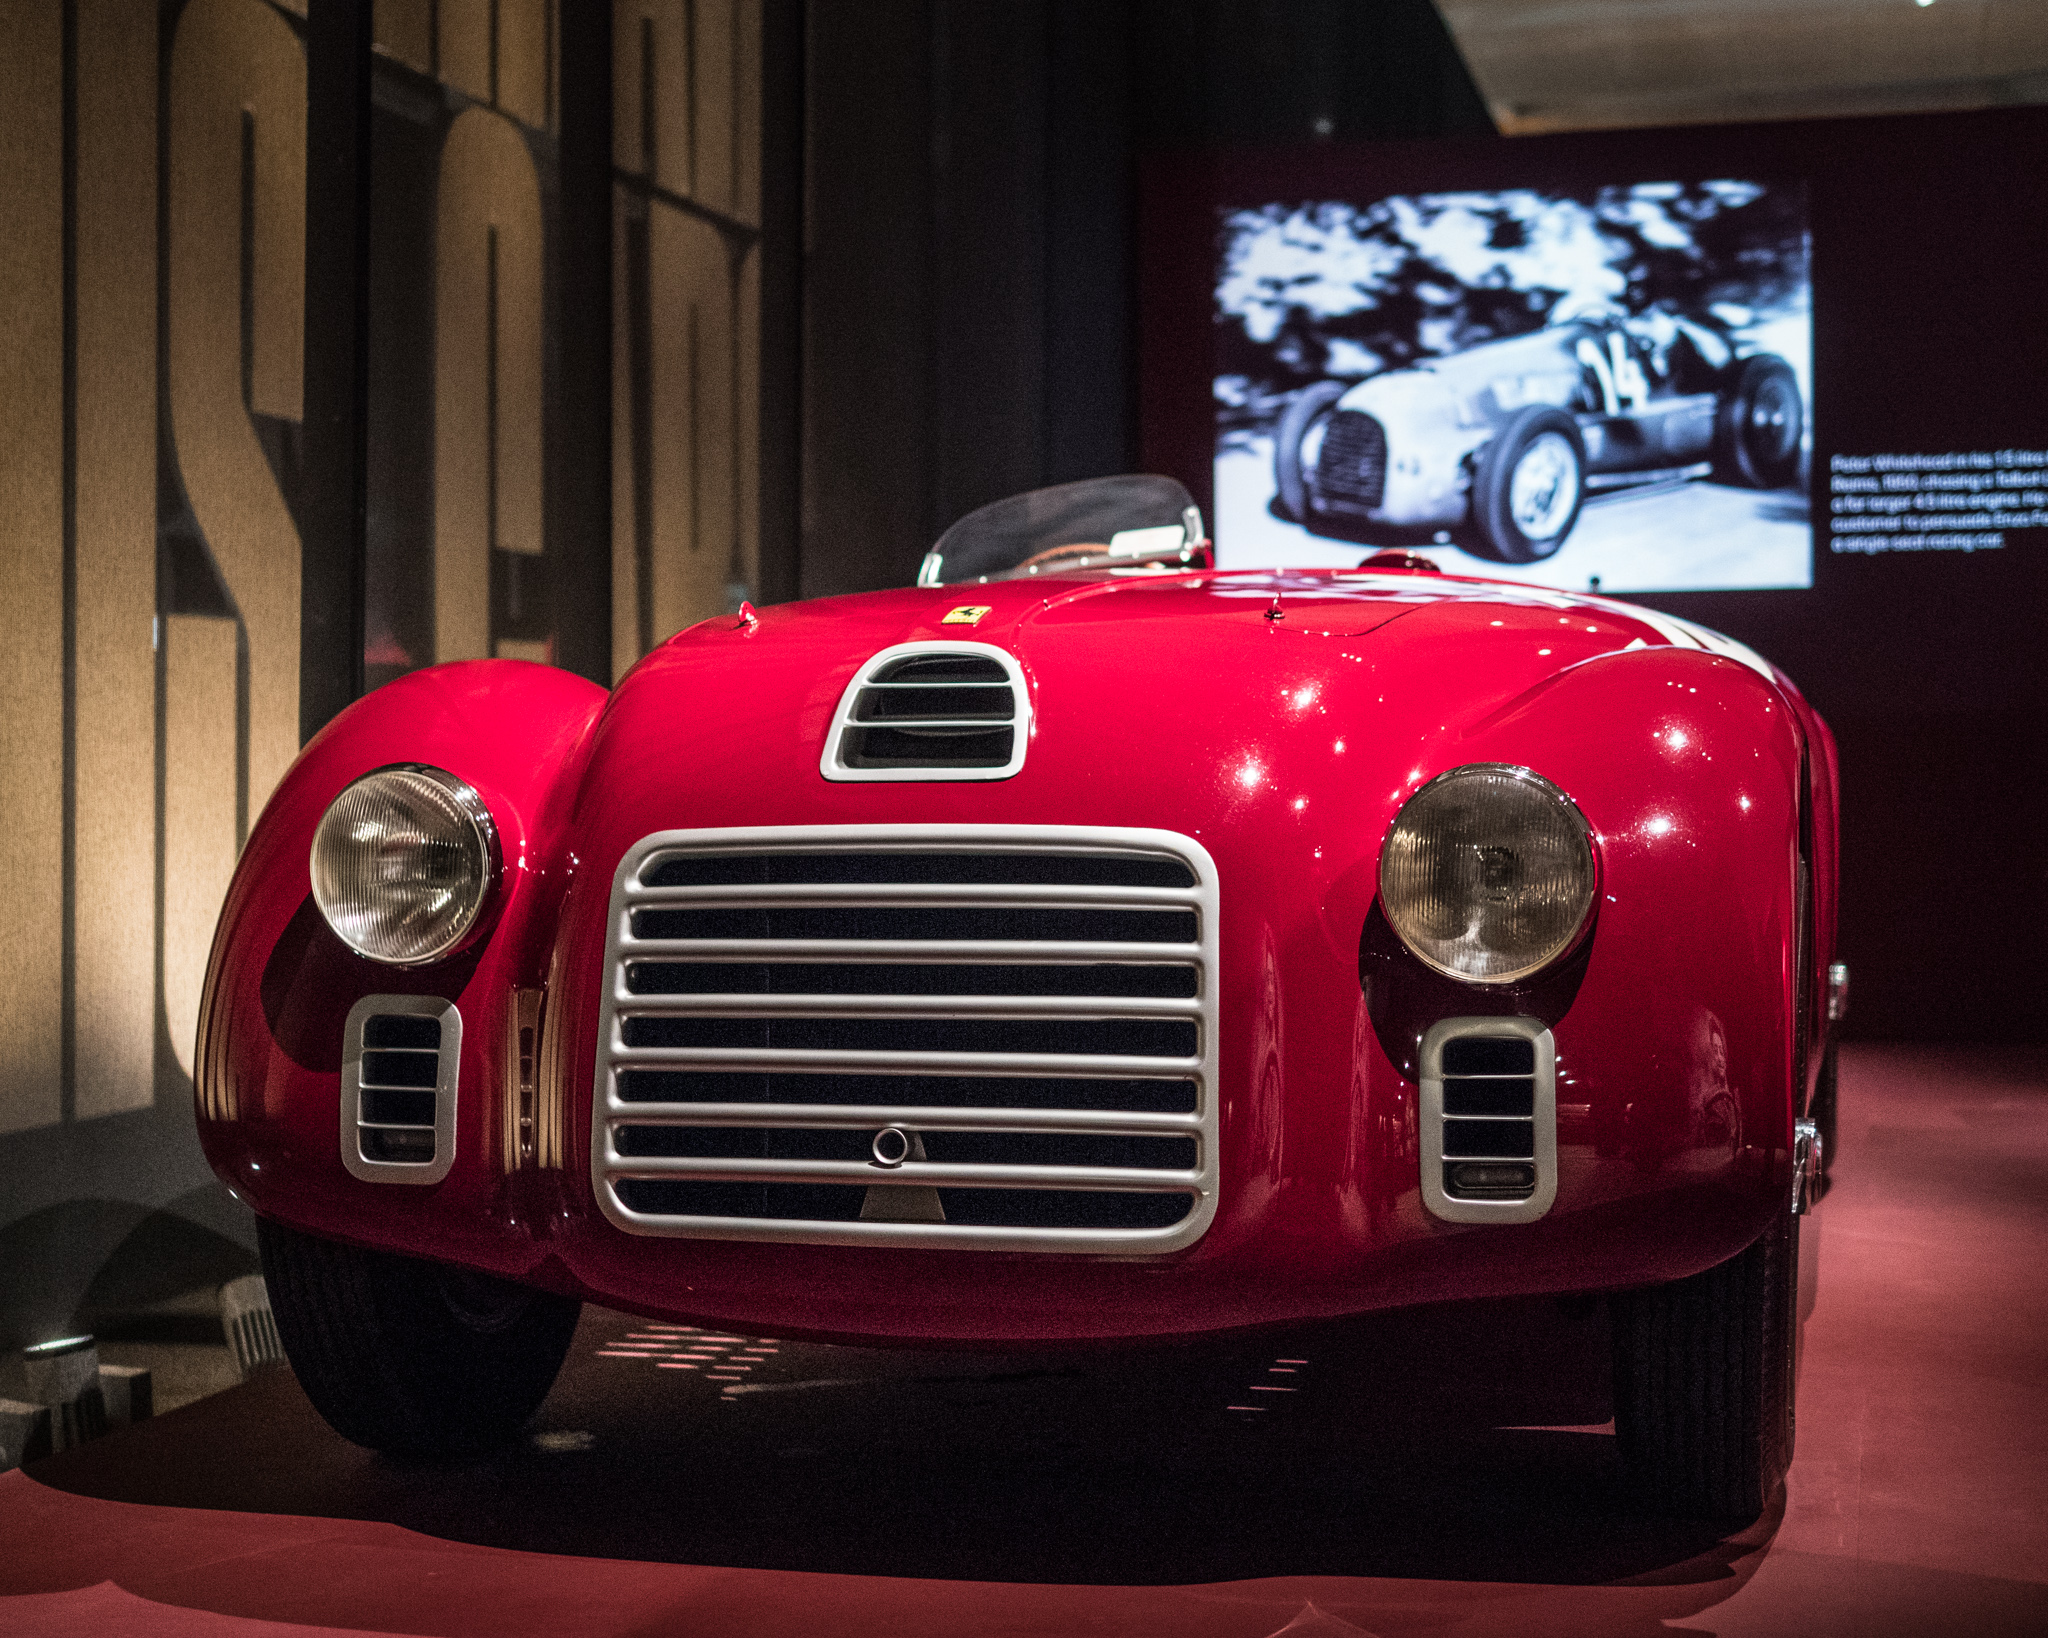 The first car design to feature the Ferrari prancing horse on its badge